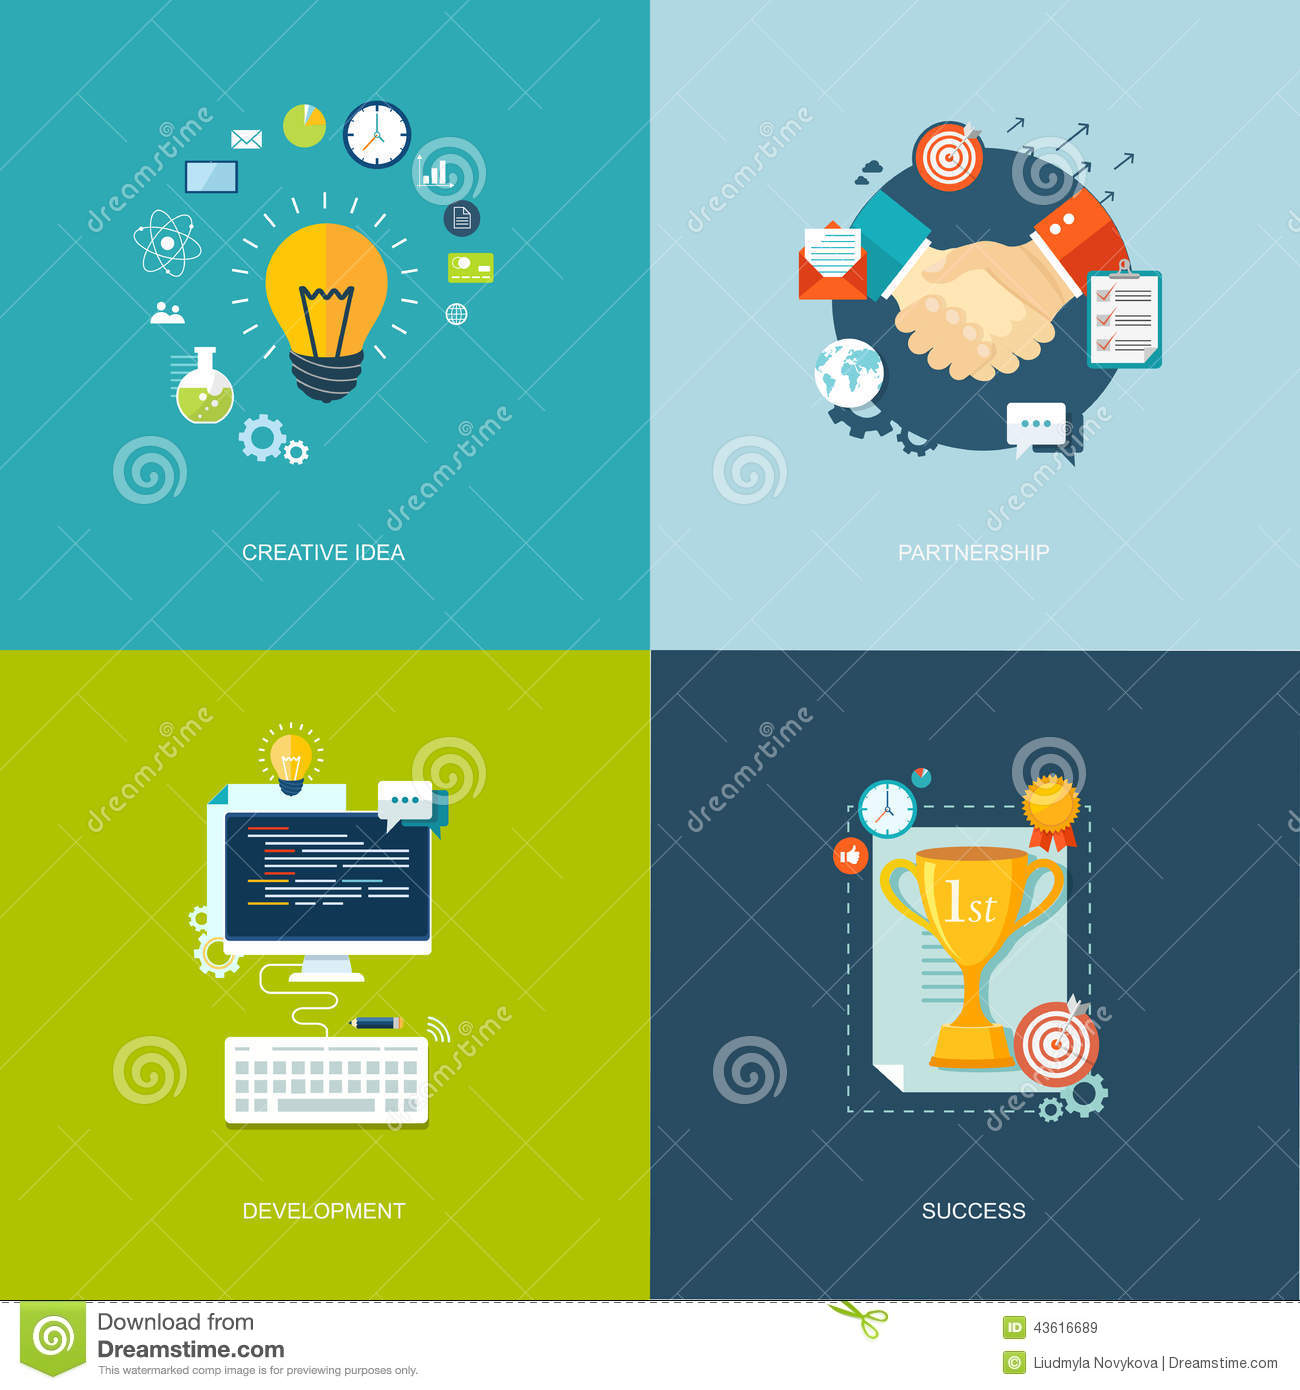 Flat Banners Set Creative Idea Partnership Development Succe Flat Banners Set Creative Idea Partnership Development Succe Research Time Management Success Illustrations Eps  Stock Illustration Flat Banners Set Creative Idea Partnership Development Succe Research Time Management Success Illustrations Eps Image